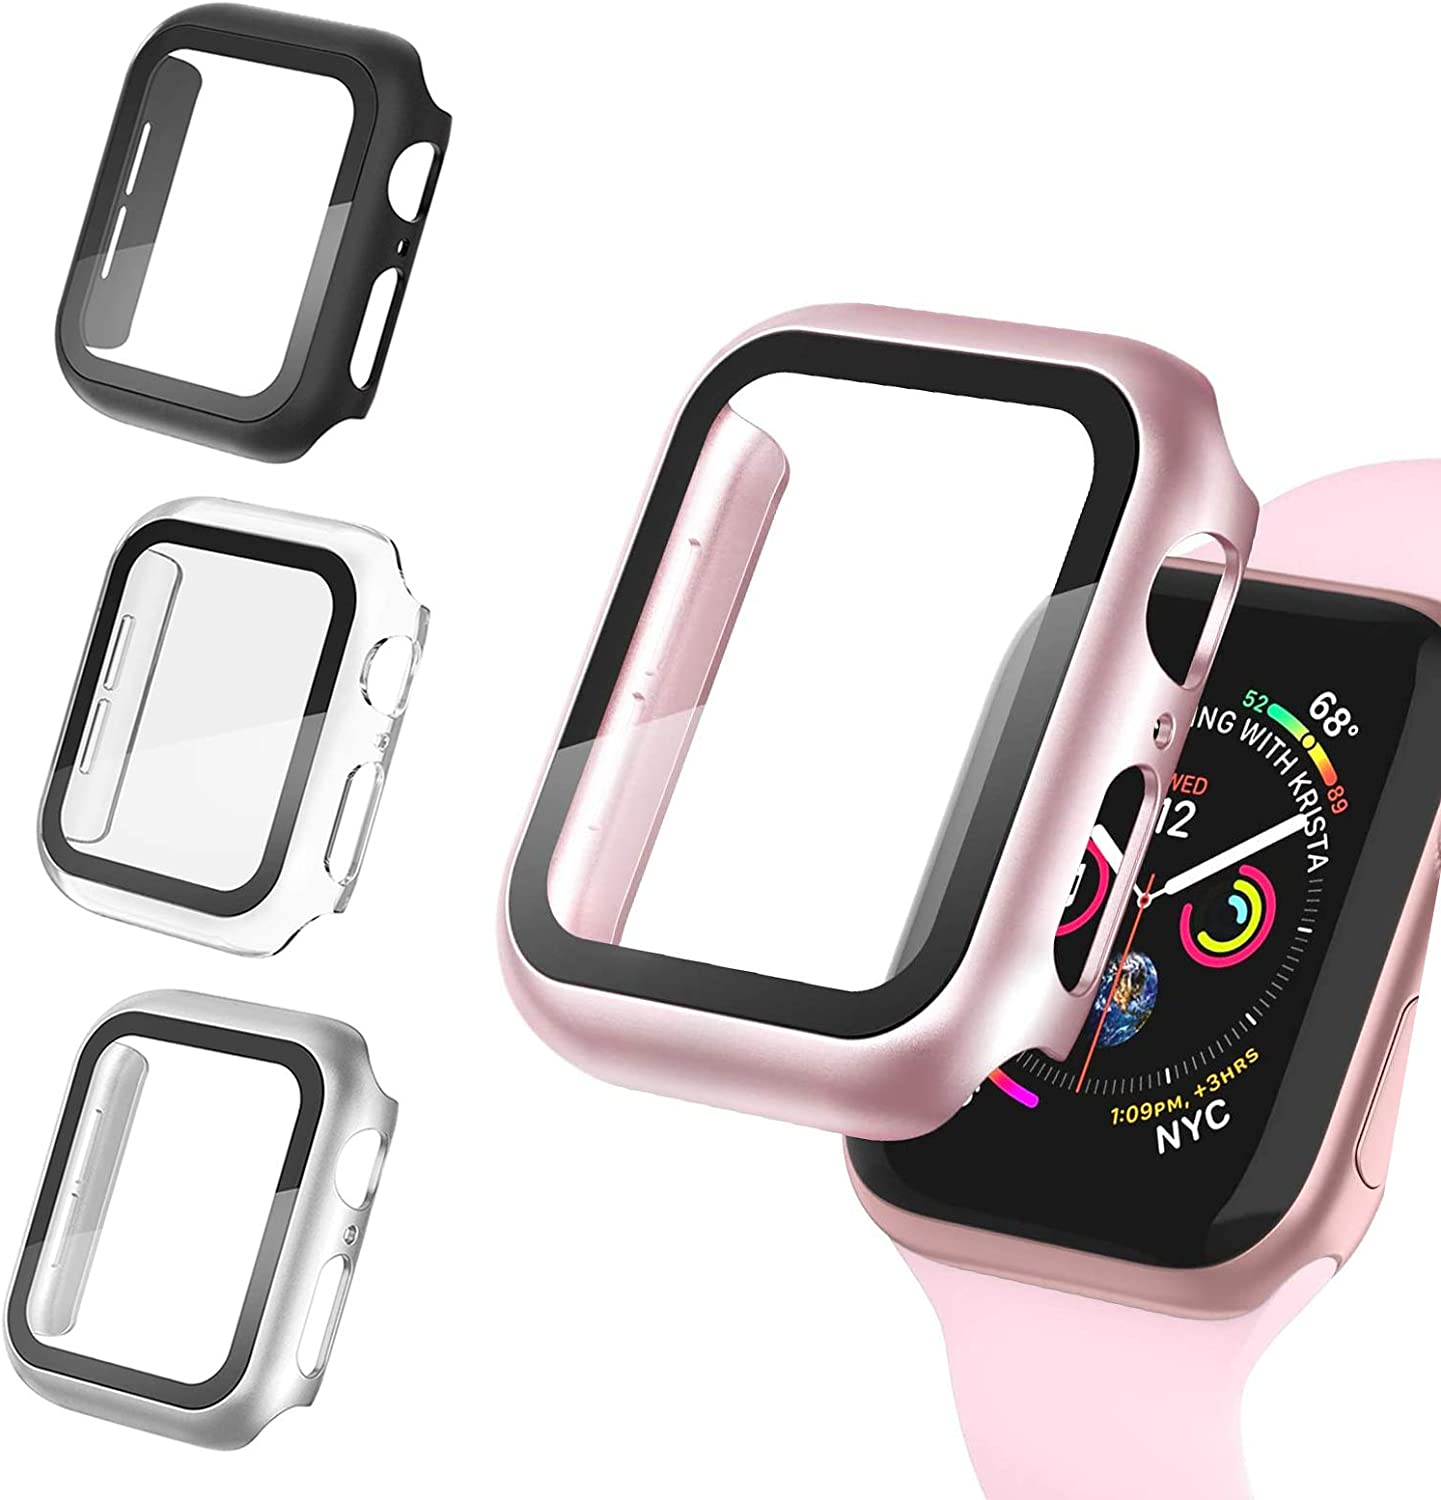 4 Pack Apple Watch Case 44mm Series 6/5/4/SE with Termpered Glass Screen Protector,Ultra-Thin Hard PC Shockproof Bumper Full Coverage Scratch-Resistant Protective Cover for Men Women iWatch